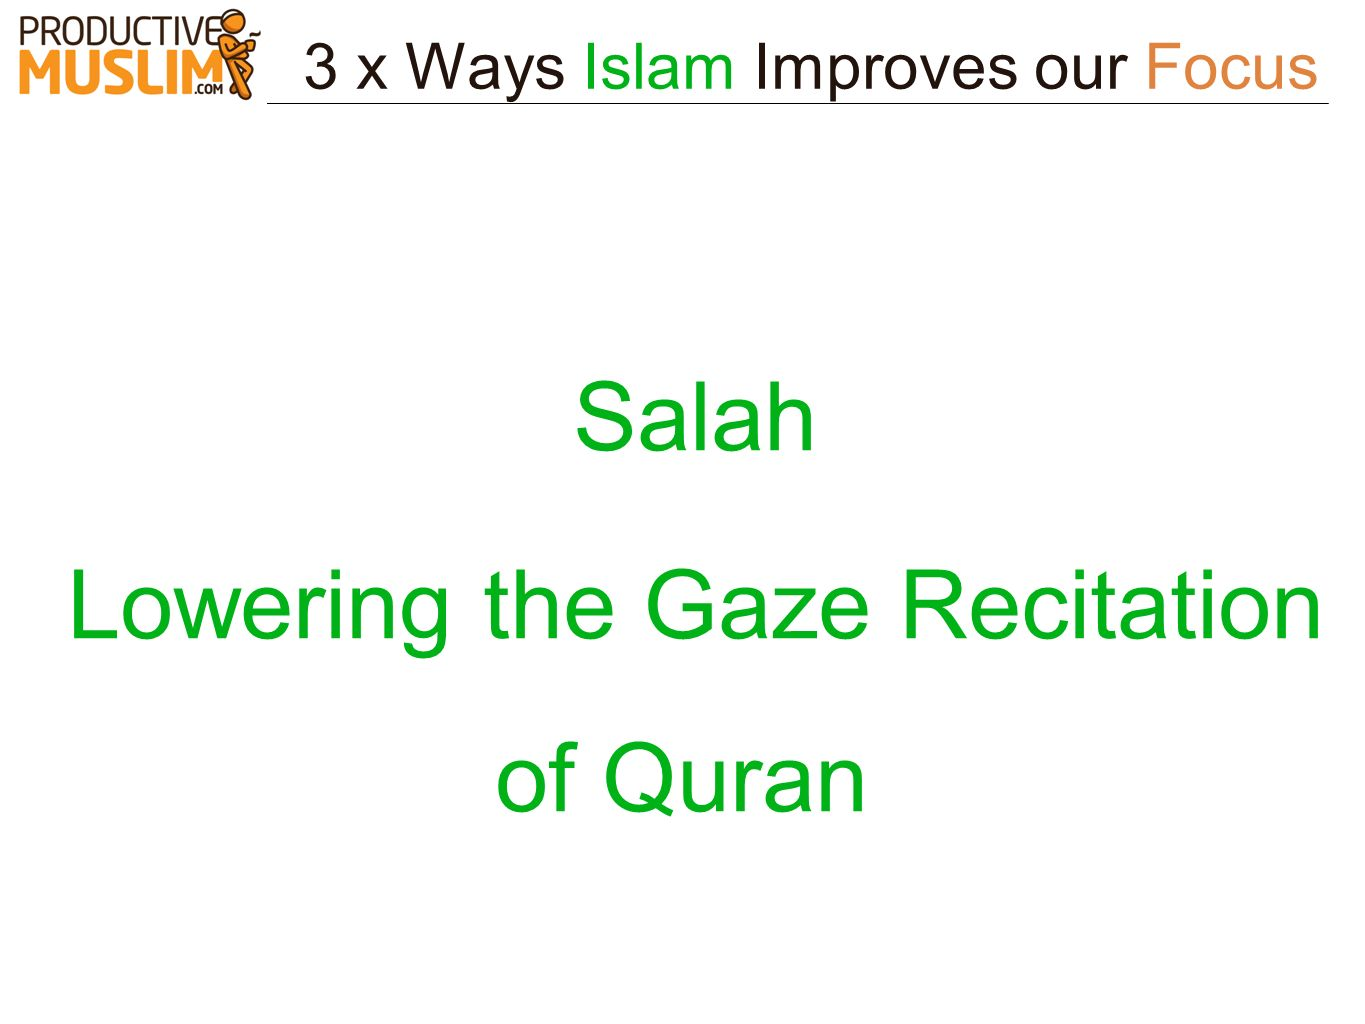 Lowering the Gaze Recitation of Quran